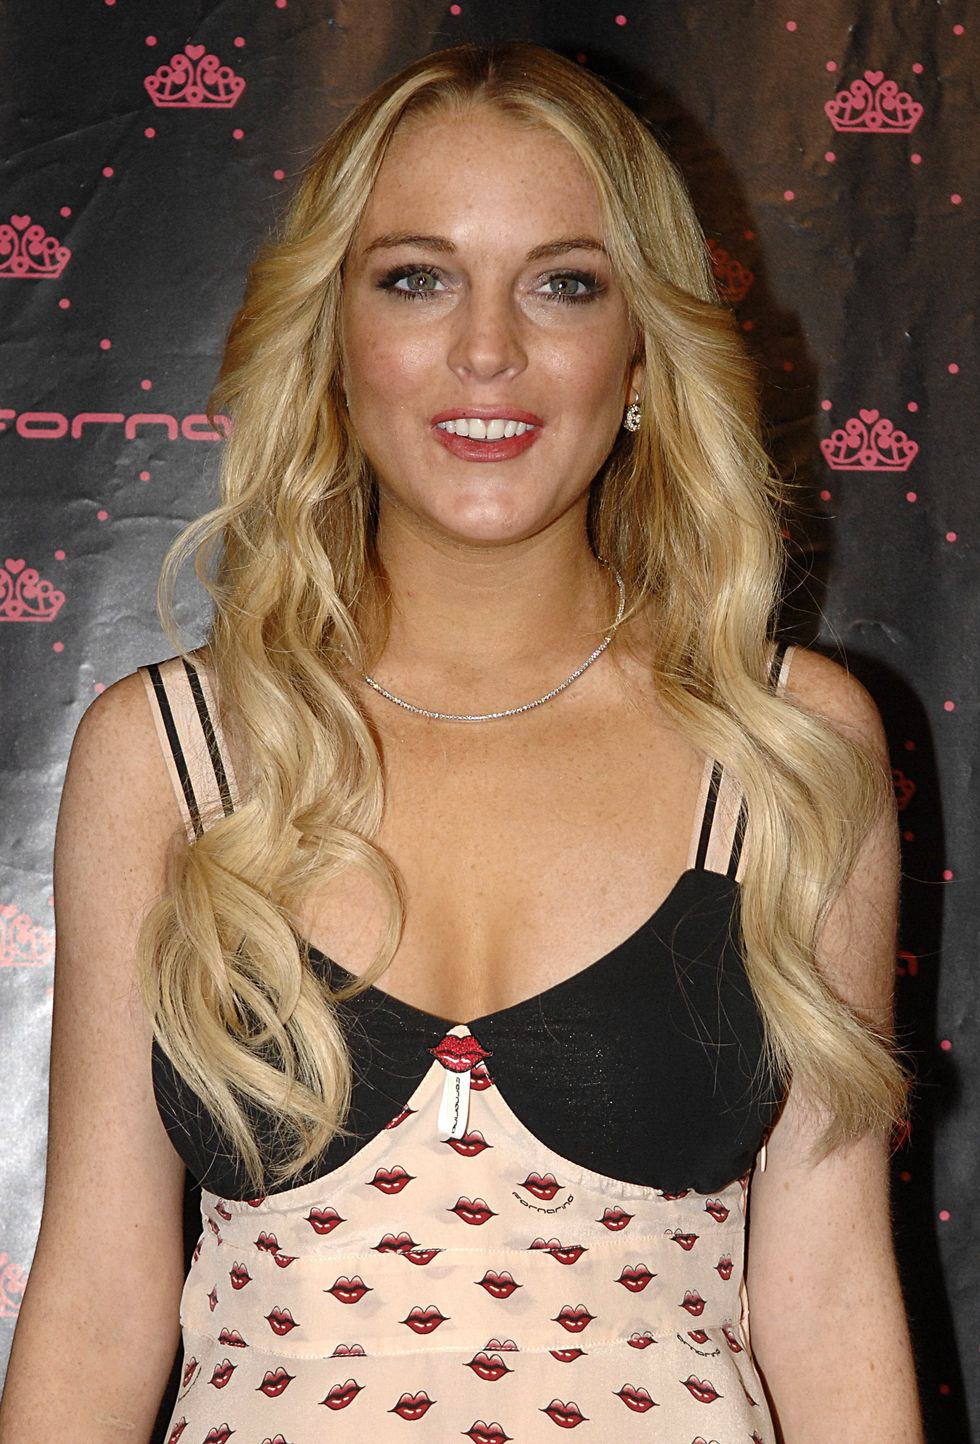 lindsay-lohan-at-fornarina-party-at-the-carrousel-du-louvre-in-paris-01